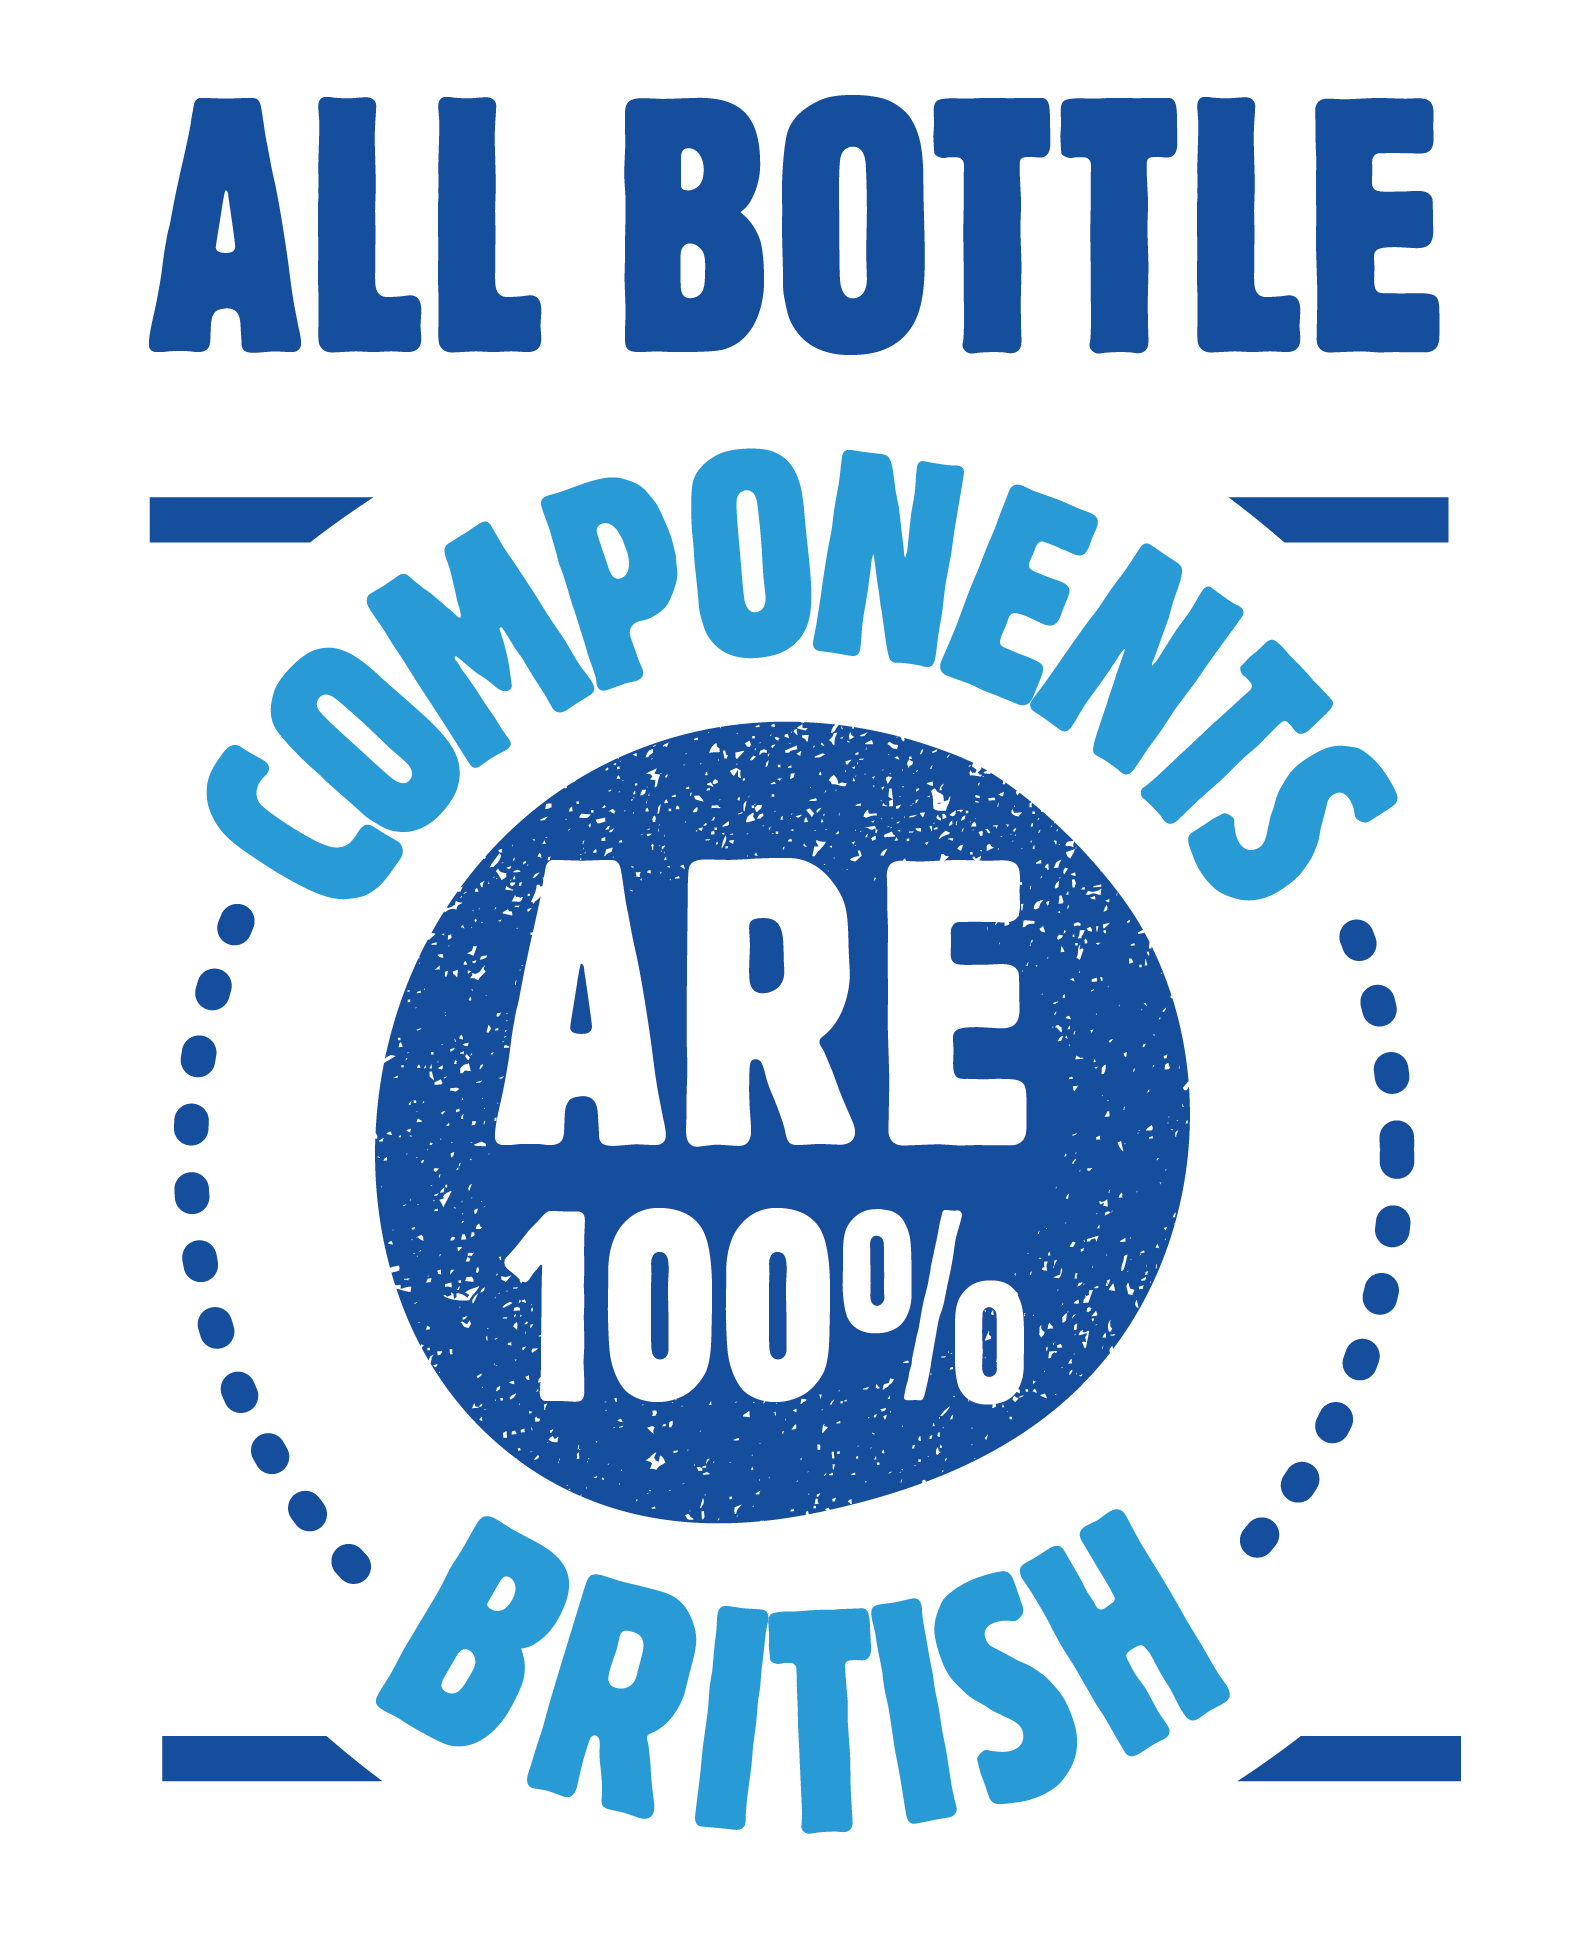 All bottle components are 100% British.